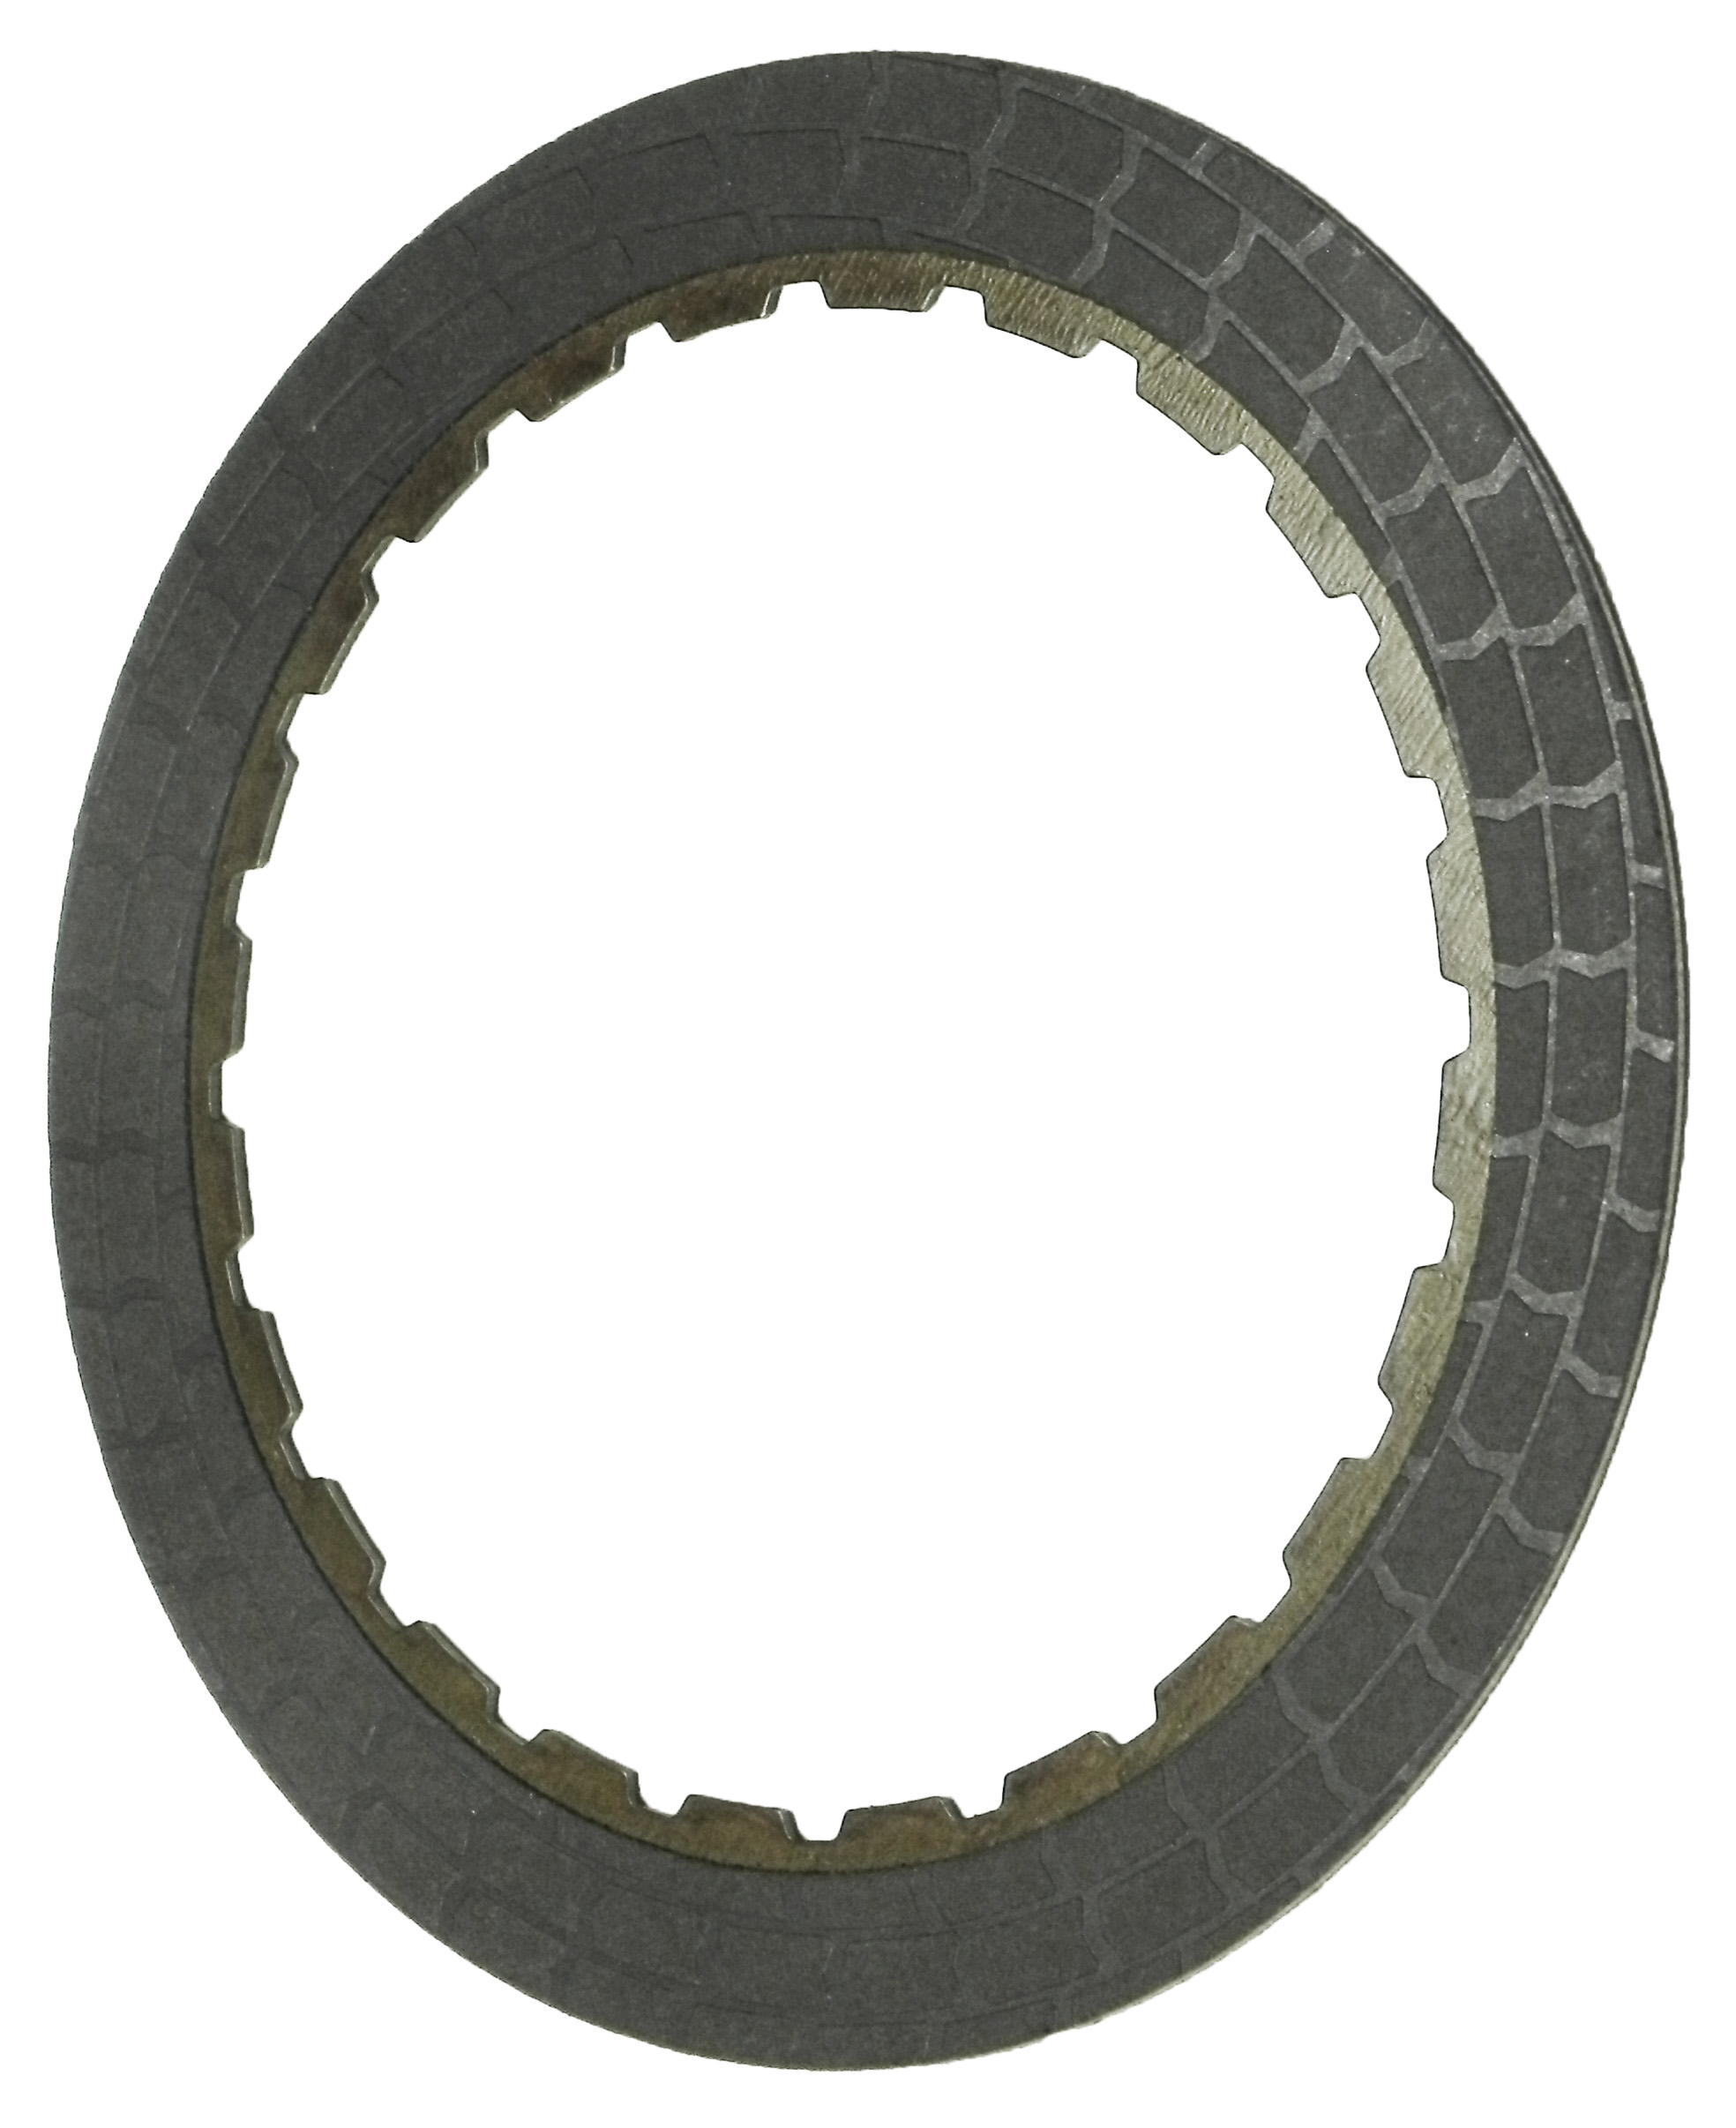 6F35 GEN 2 (2012-ON) (HT) Hybrid Technology Friction Clutch Plate